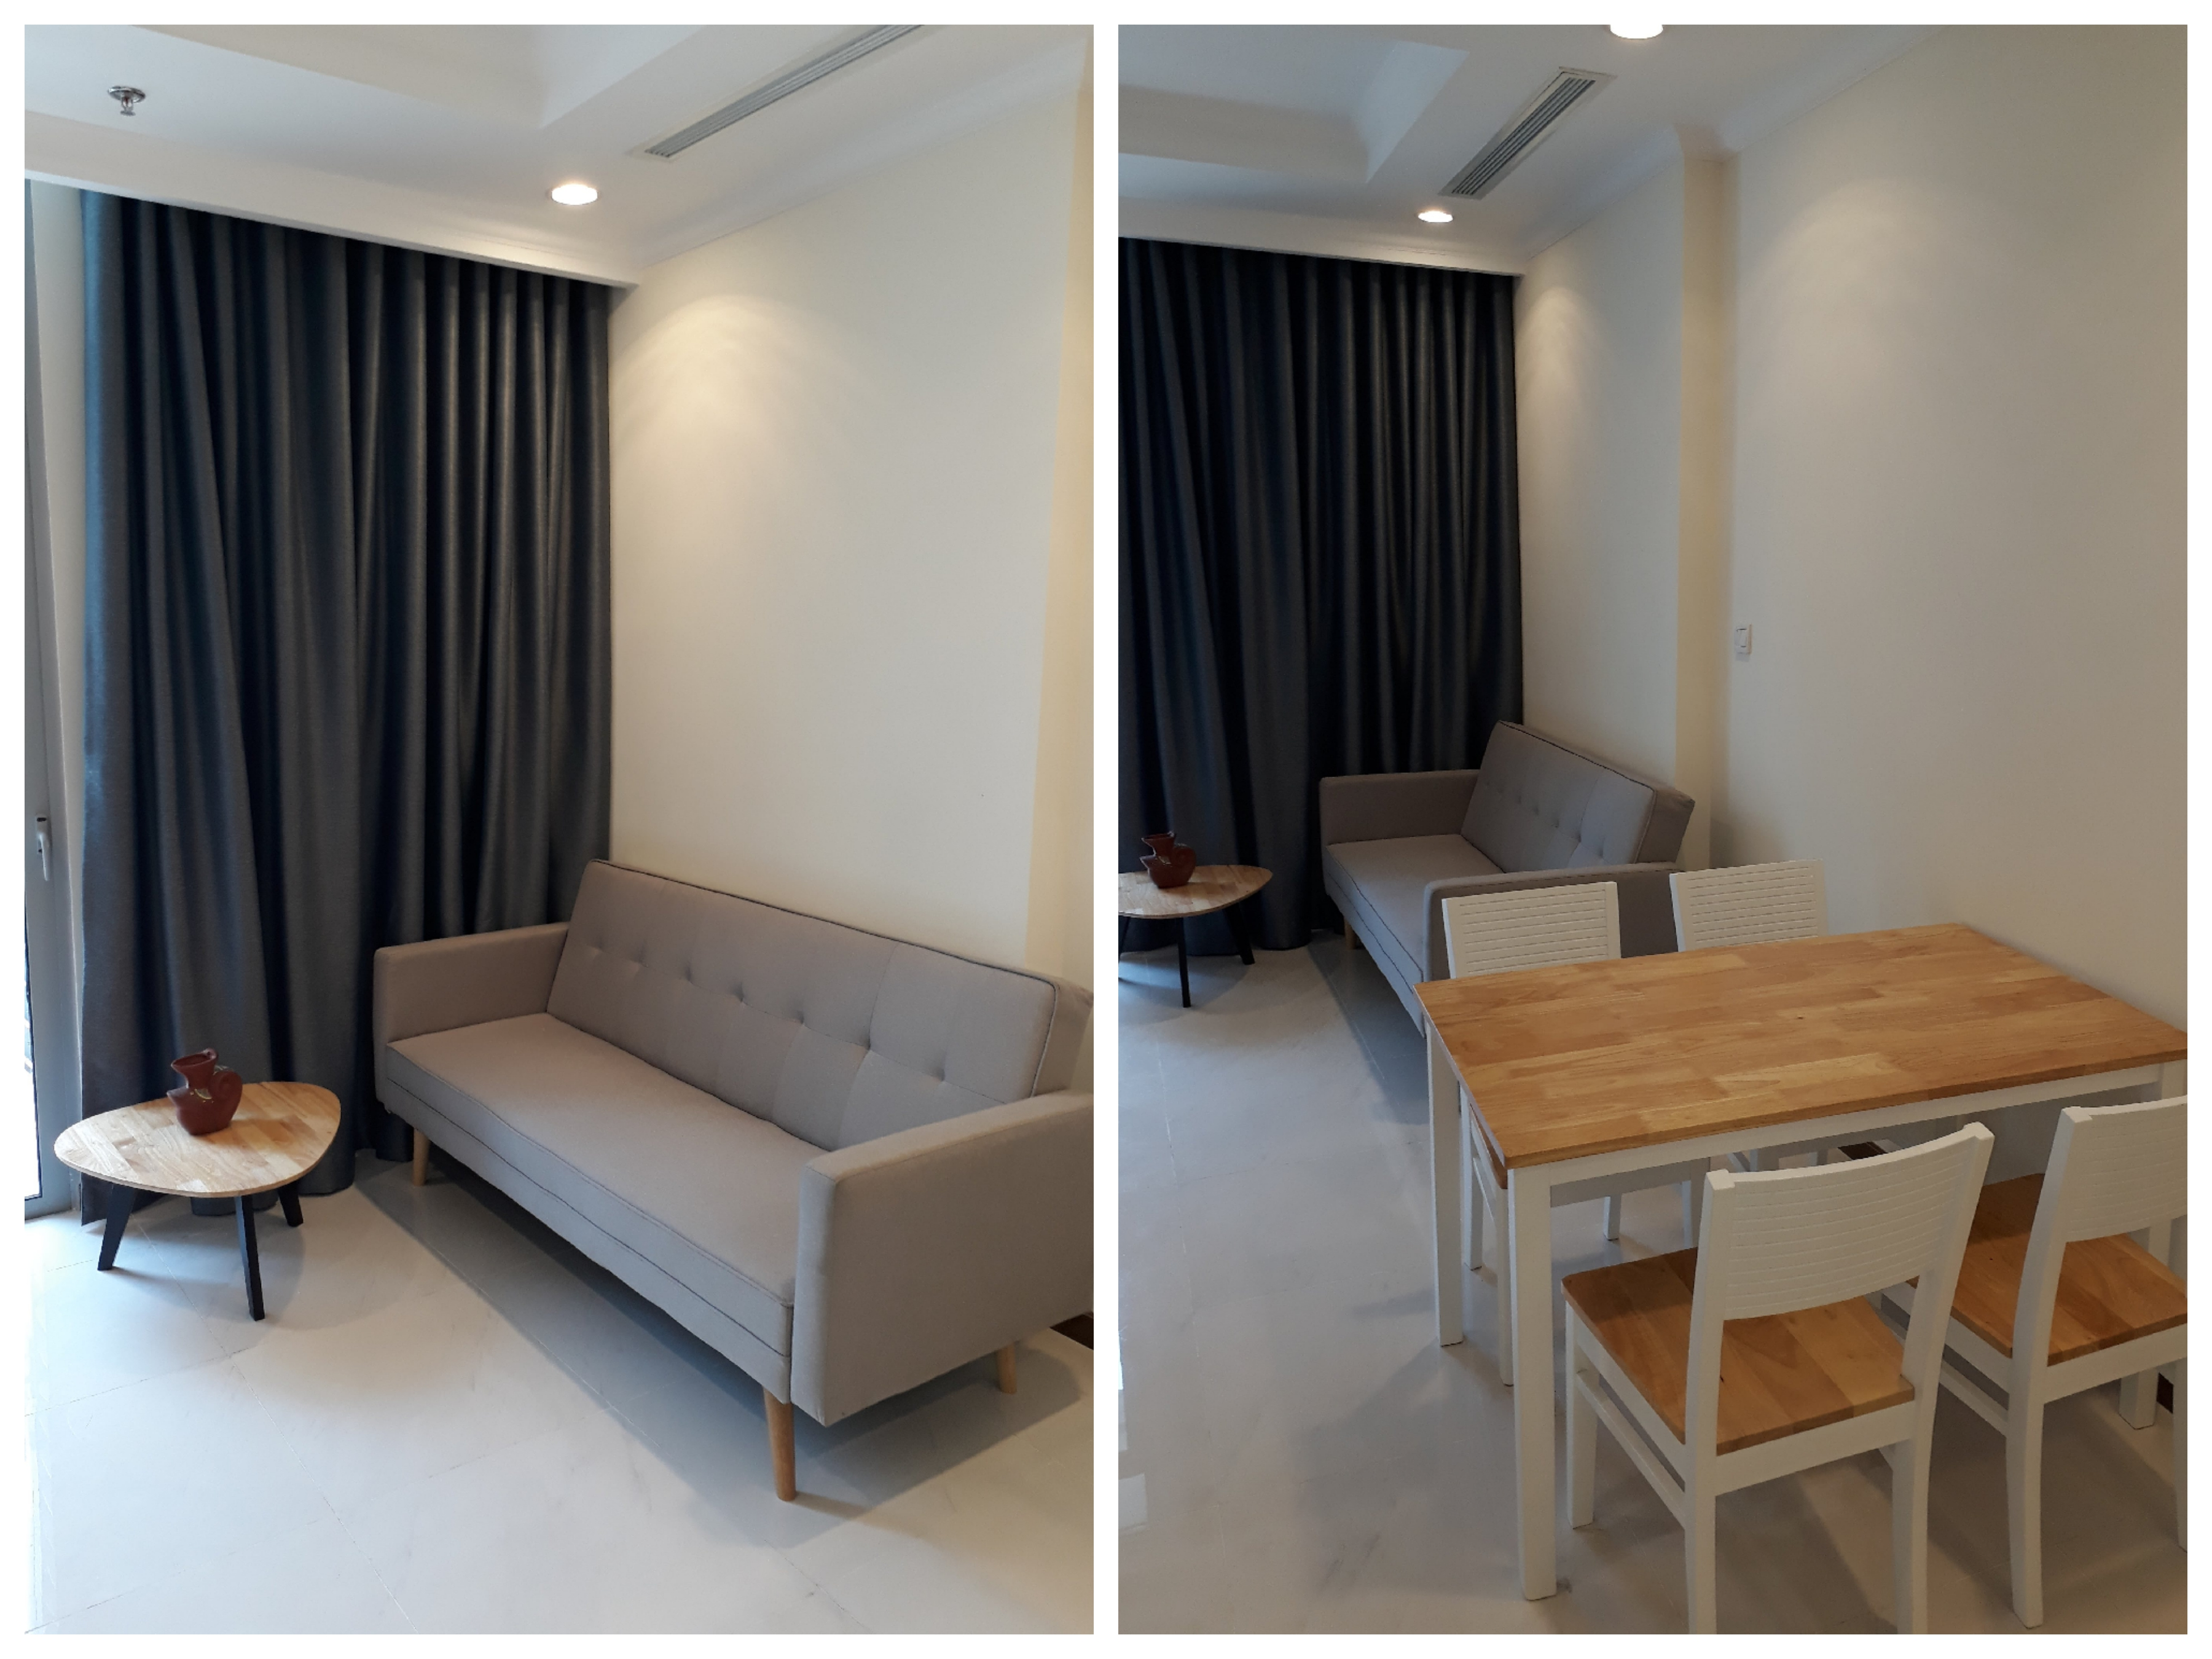 apartment for rent in Vinhomes Central Park Binh Thanh  District HCM  BT105L2461 (2)